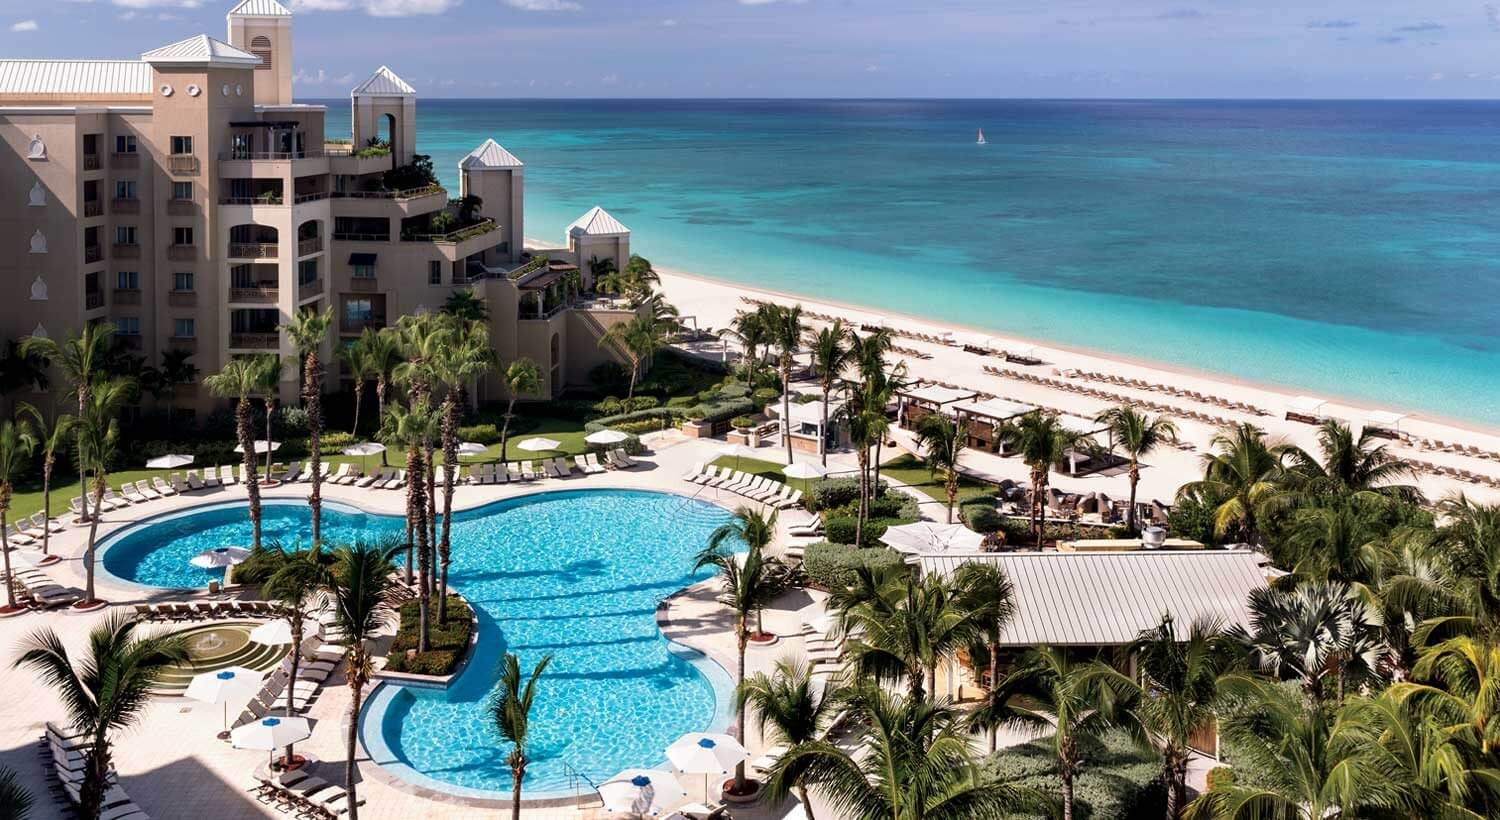 Luxury cayman villas at The Residences